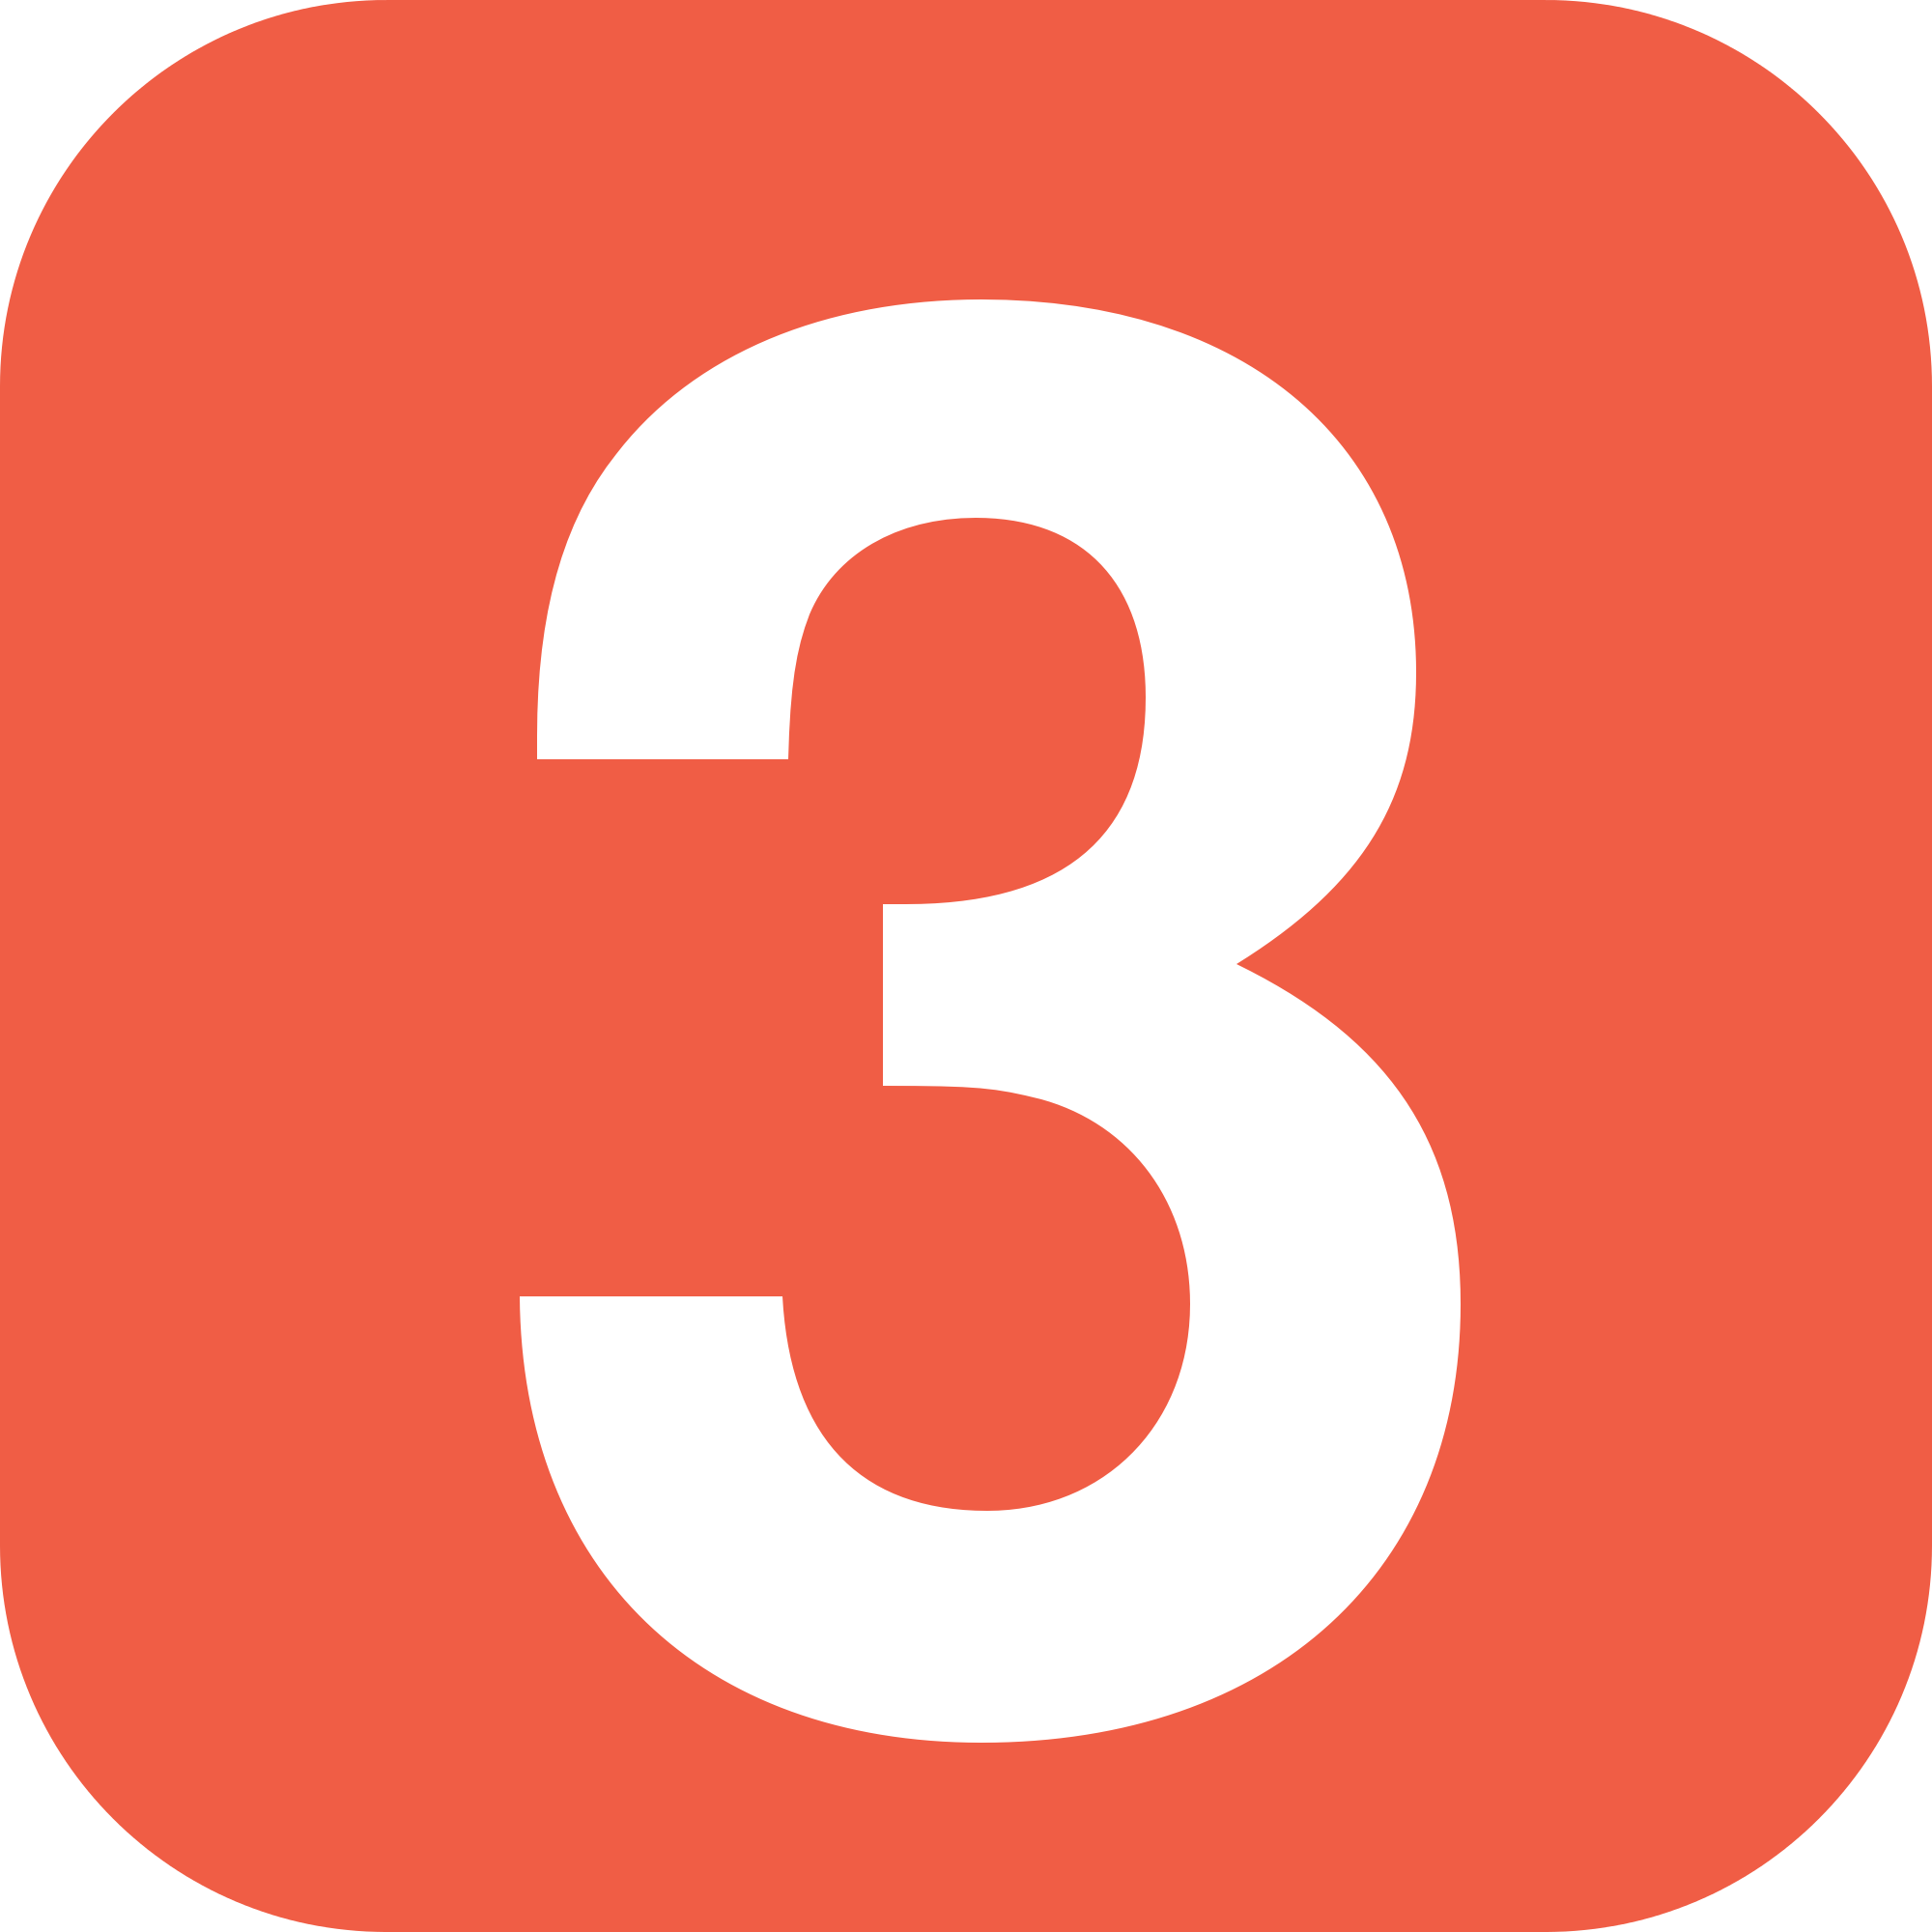 Number 3 PNG Transparent Image Icon #8.